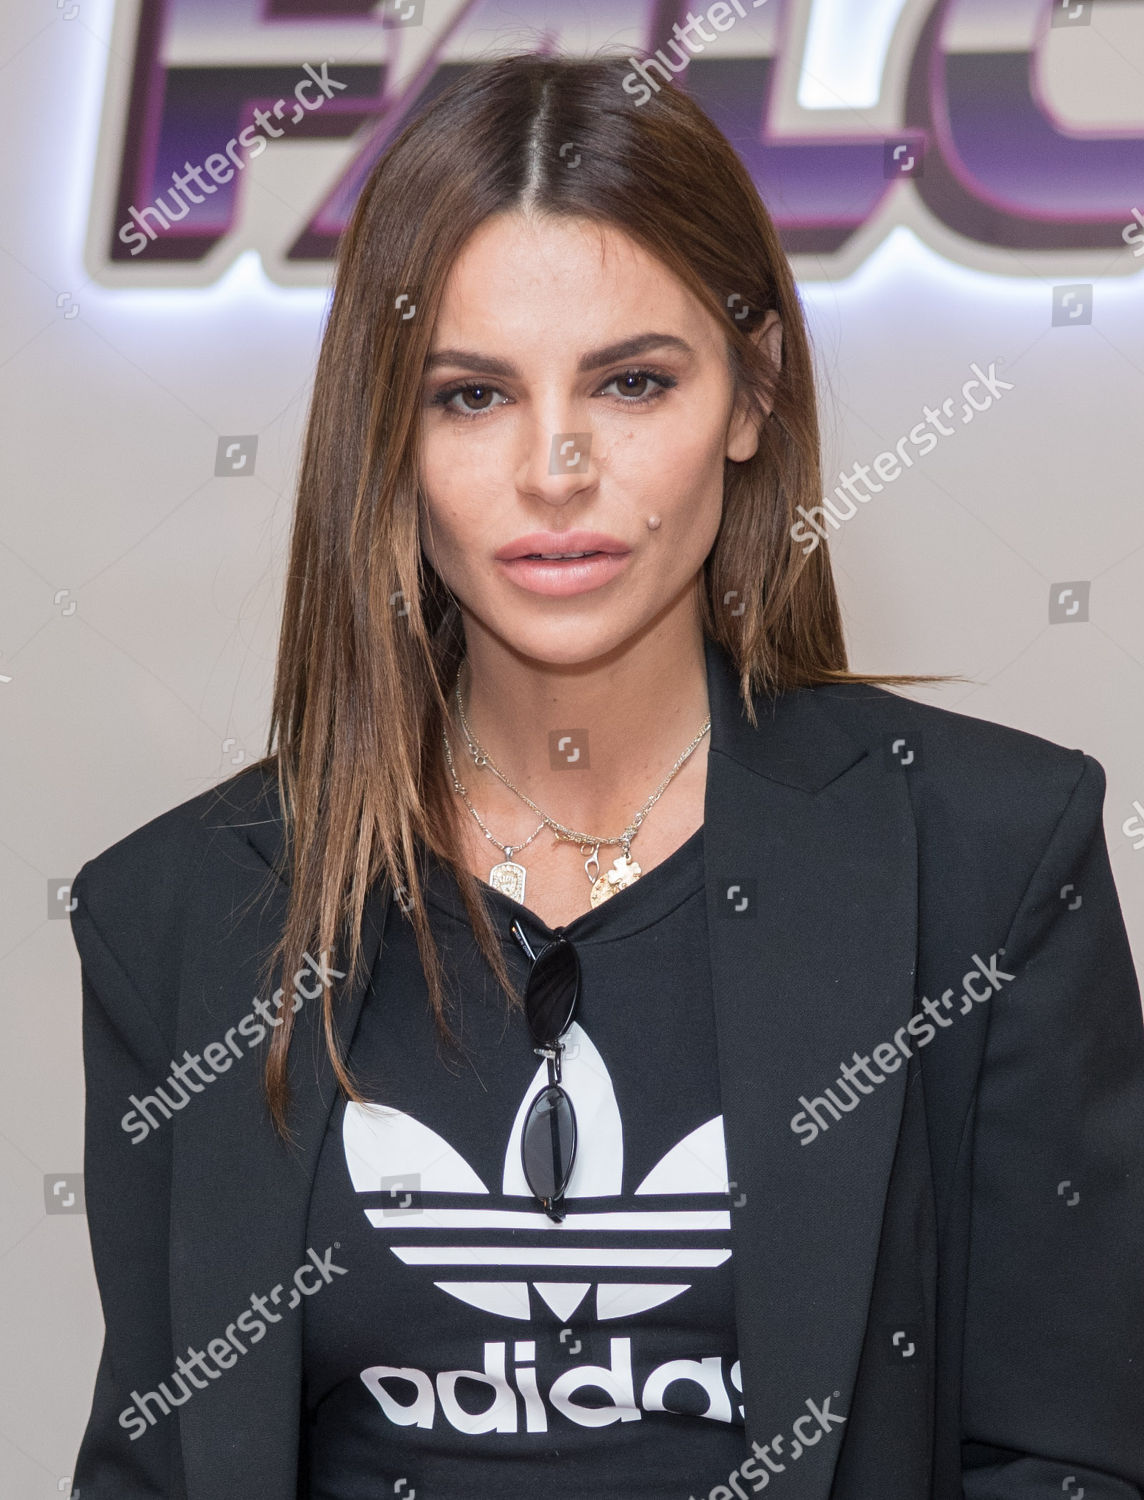 2019 Misse Beqiri nude photos 2019